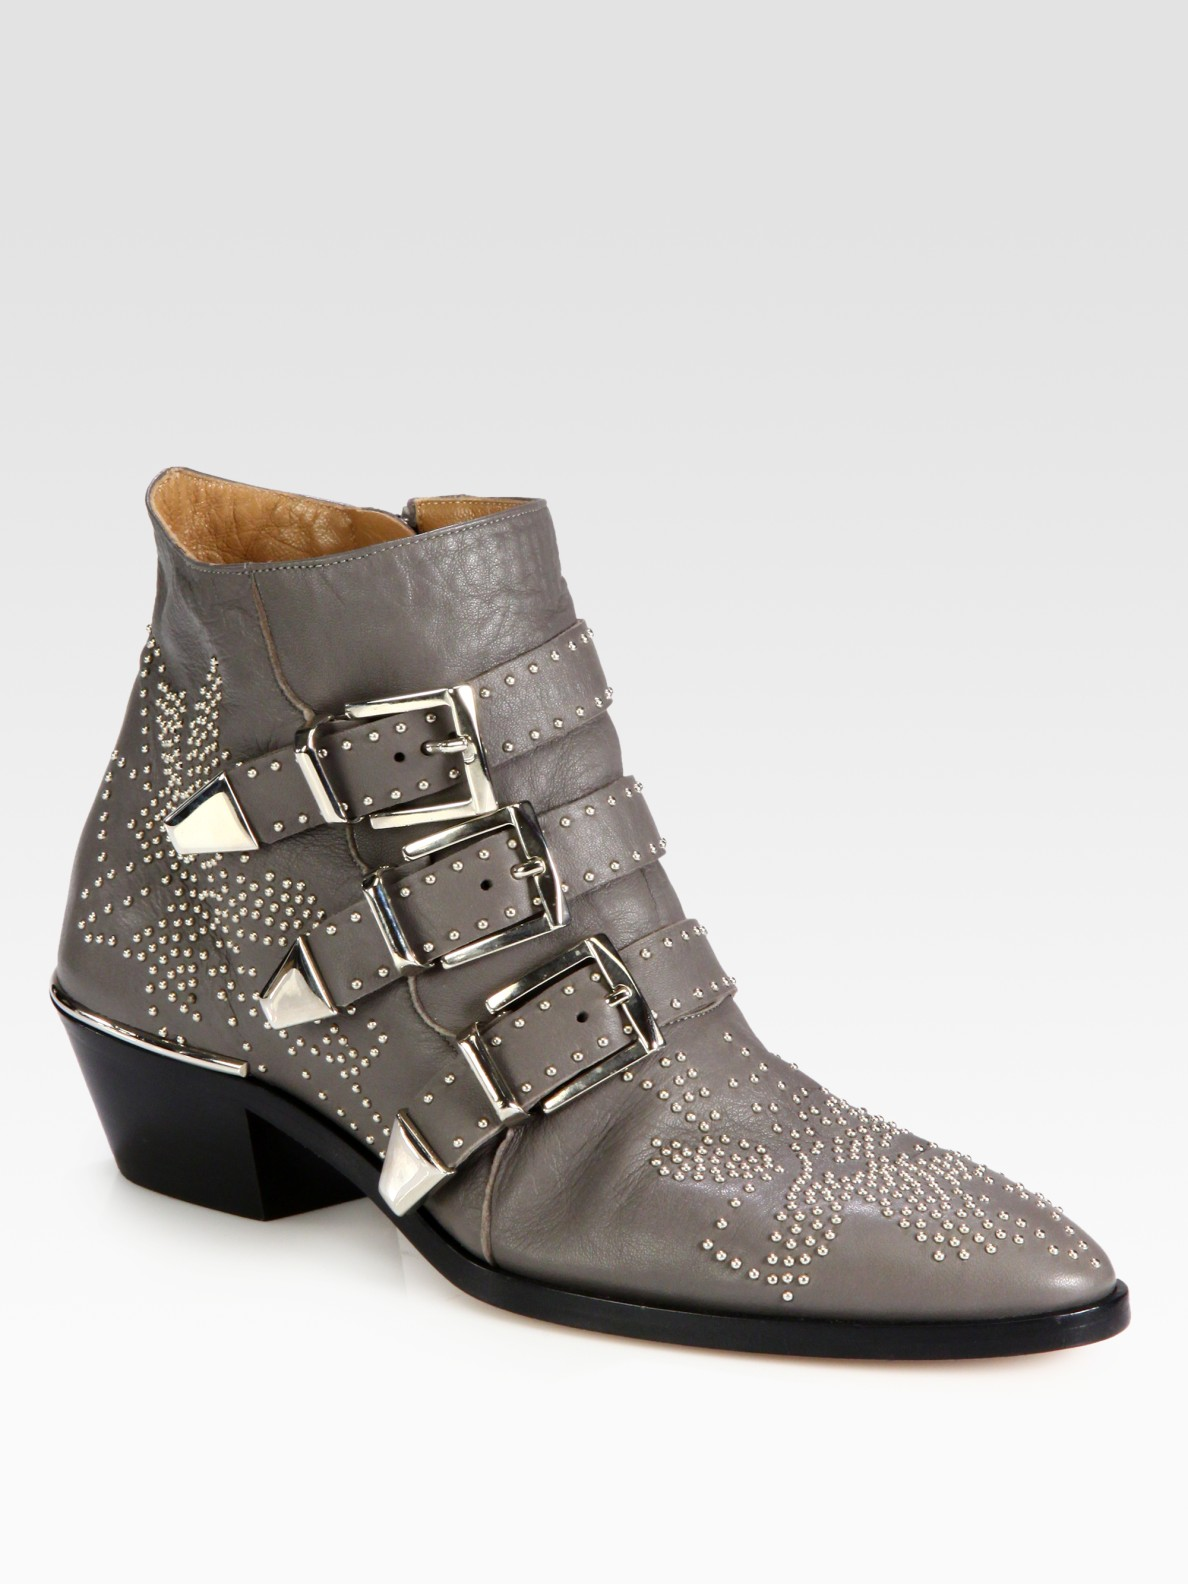 Chlo 233 Studded Leather Buckle Ankle Boots In Gray Lyst